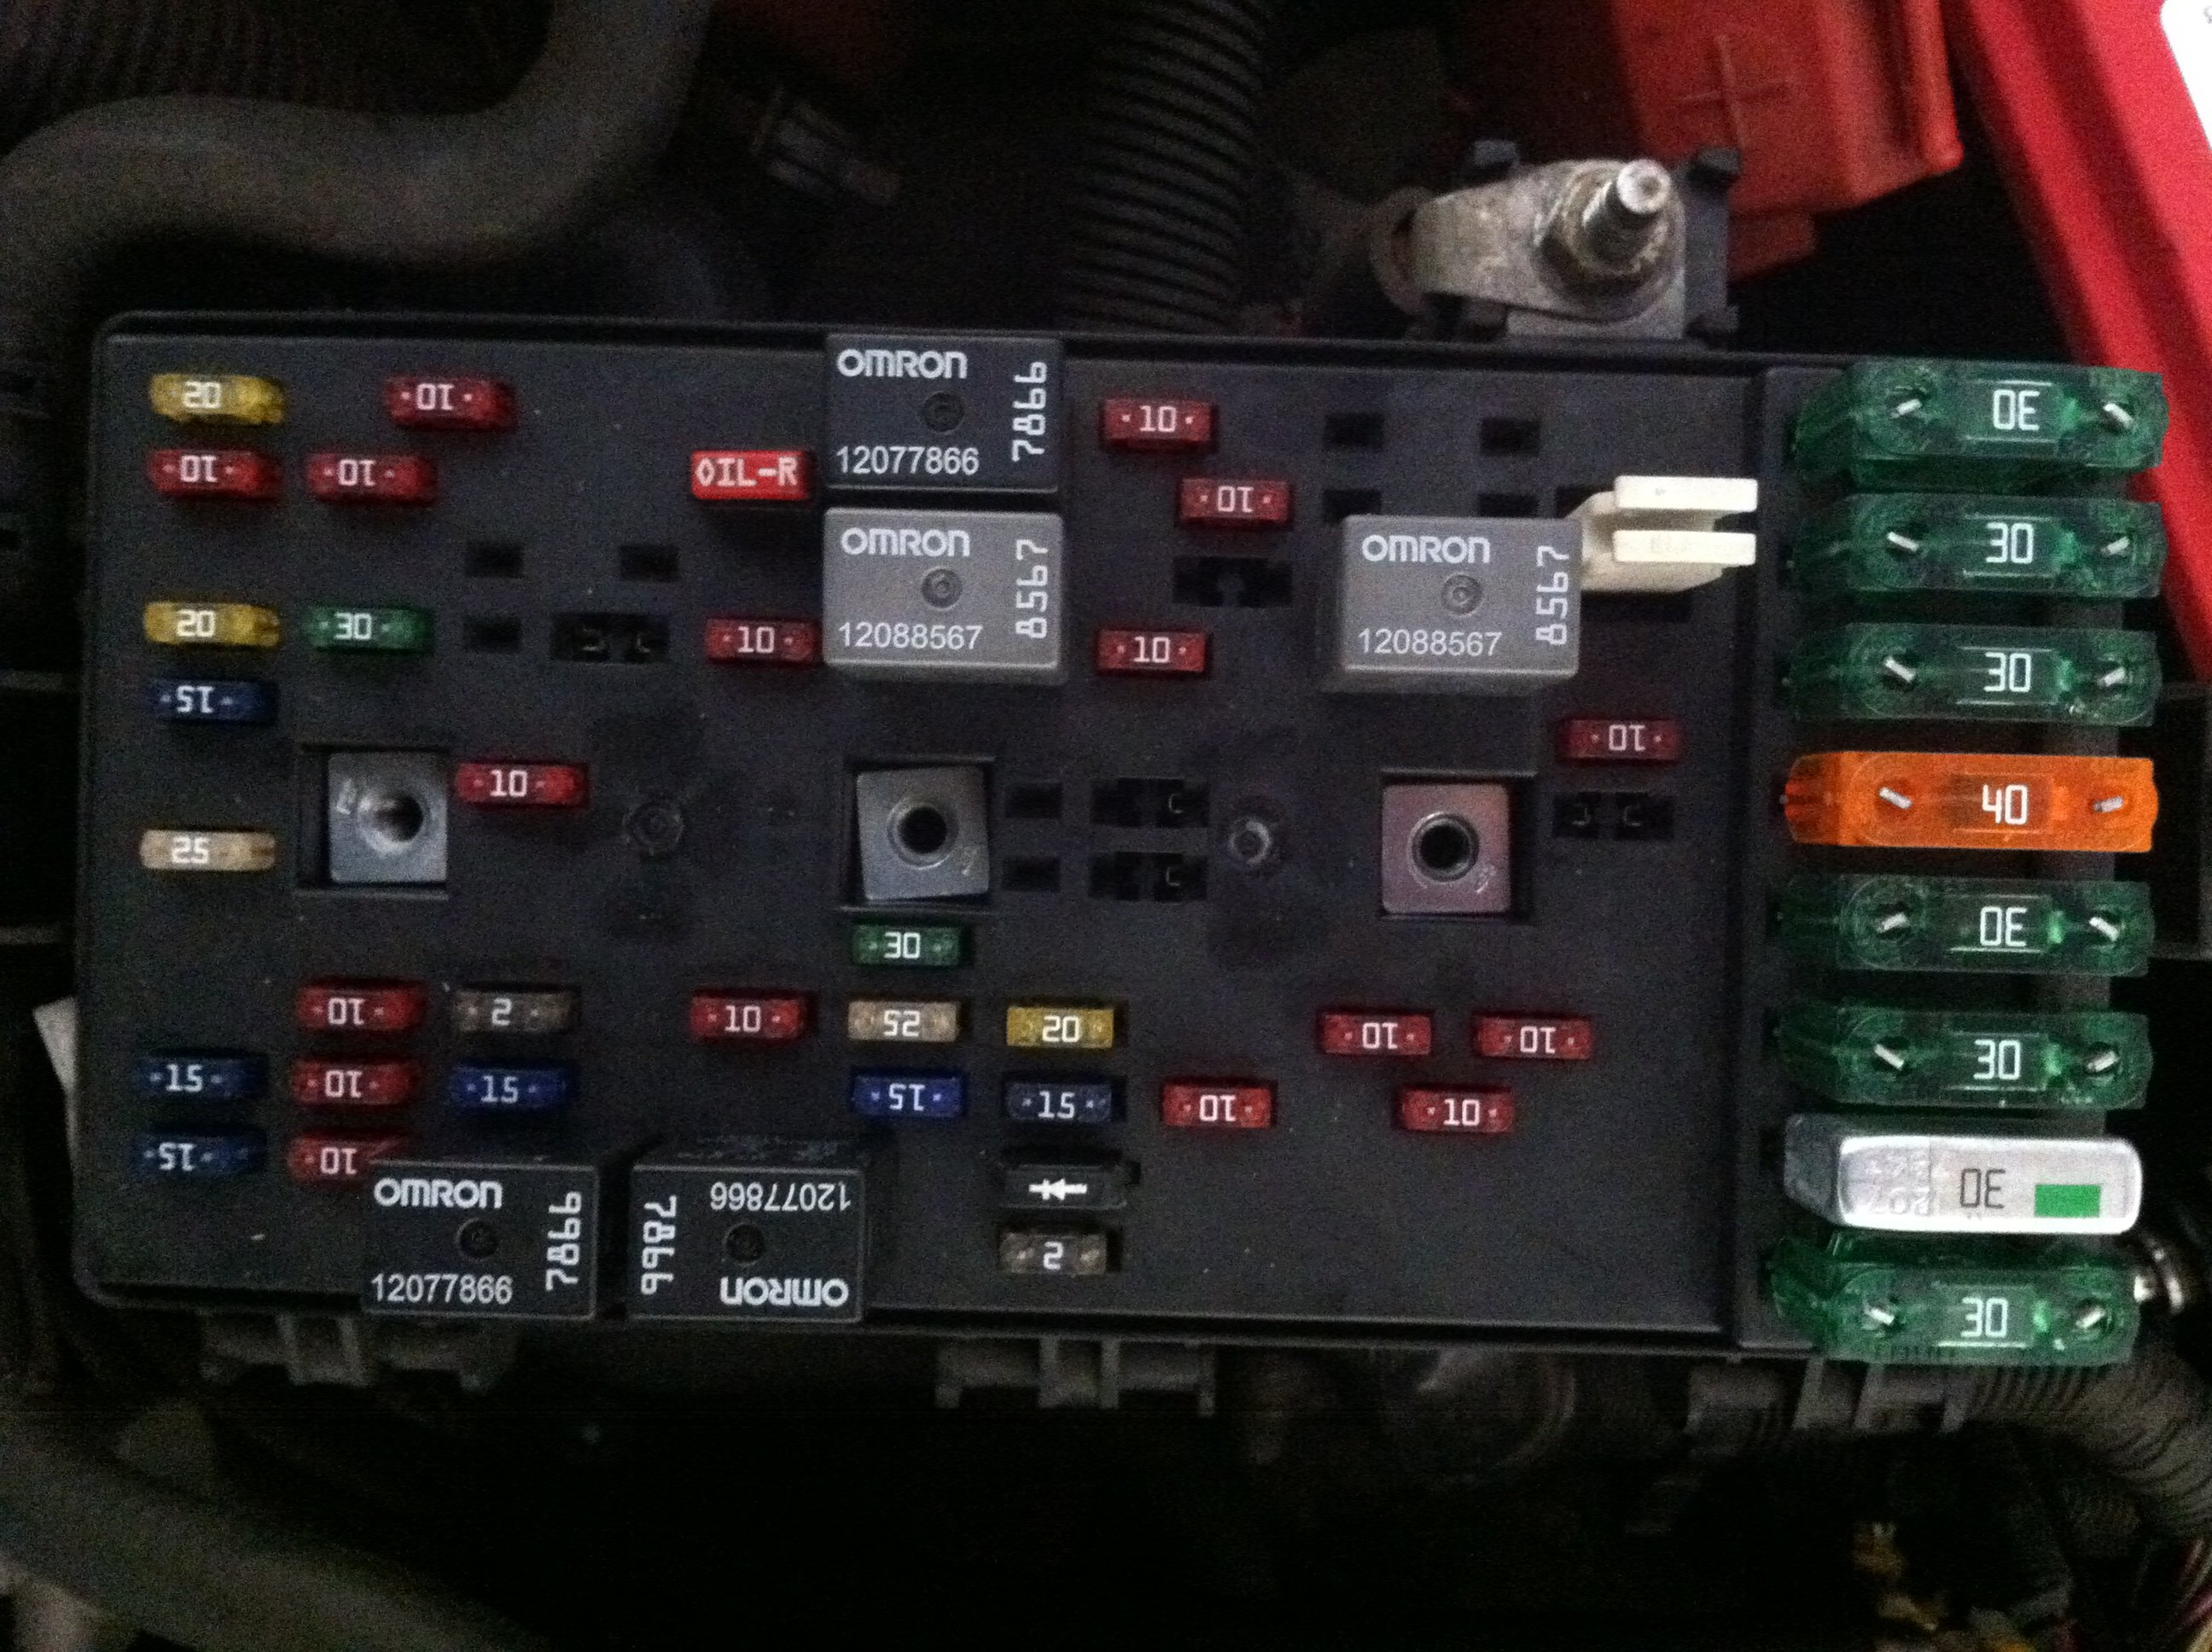 2003 Saturn Fuse Box Location | Wiring Library